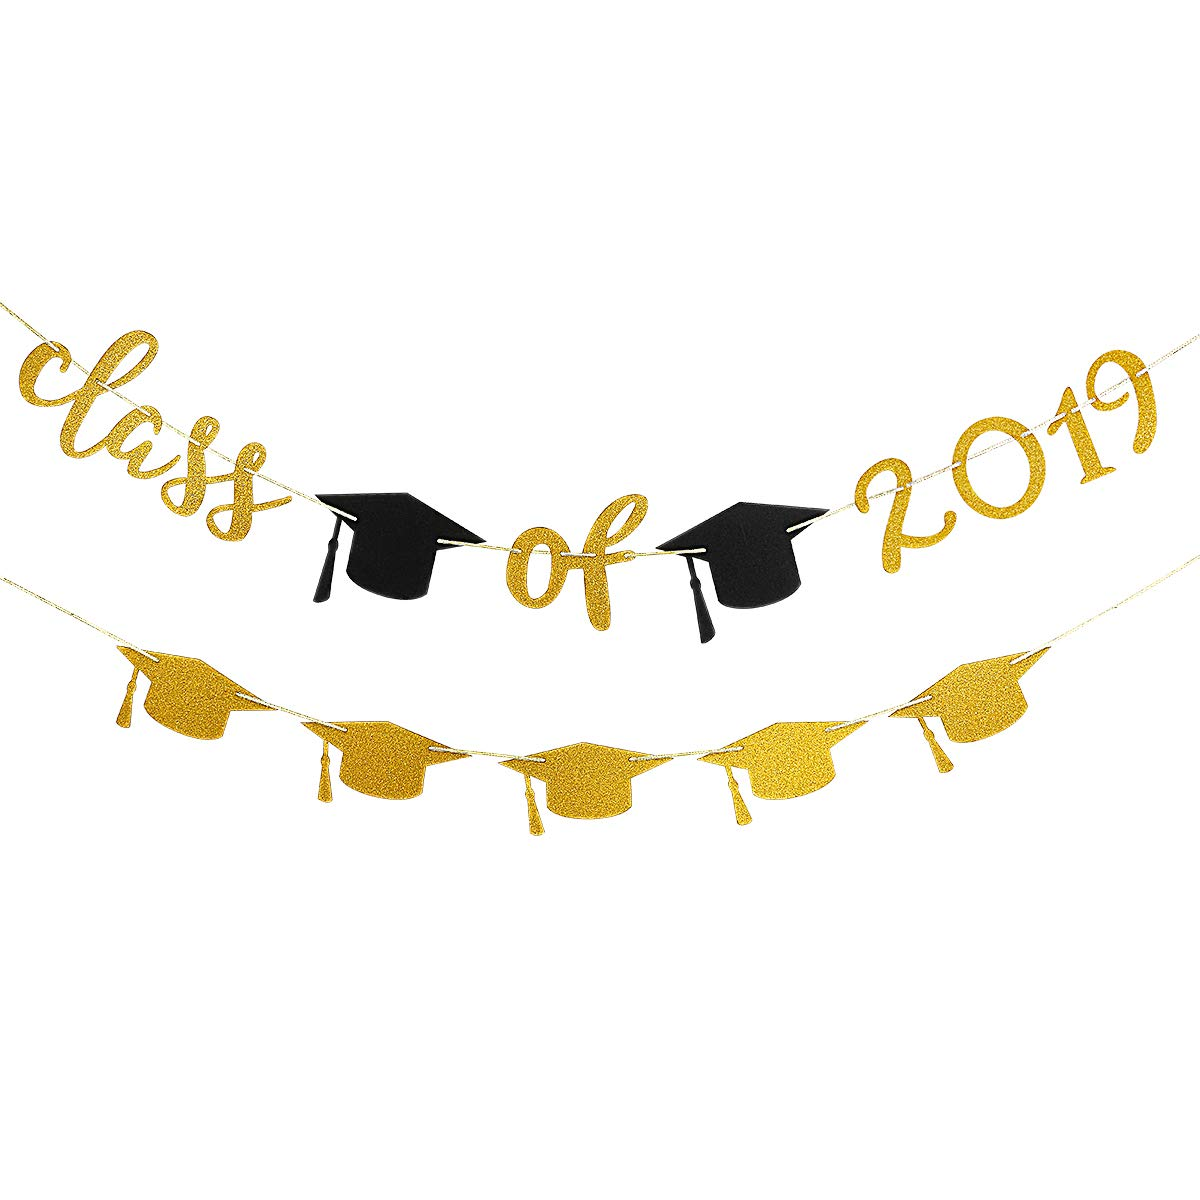 2019 banner clipart image black and white 2019 Graduation Party Decorations,Gold Glittery Class of 2019 Banner and  Gold Glittery Graduation Cap Garland- Graduation/Grad Party Decorations image black and white